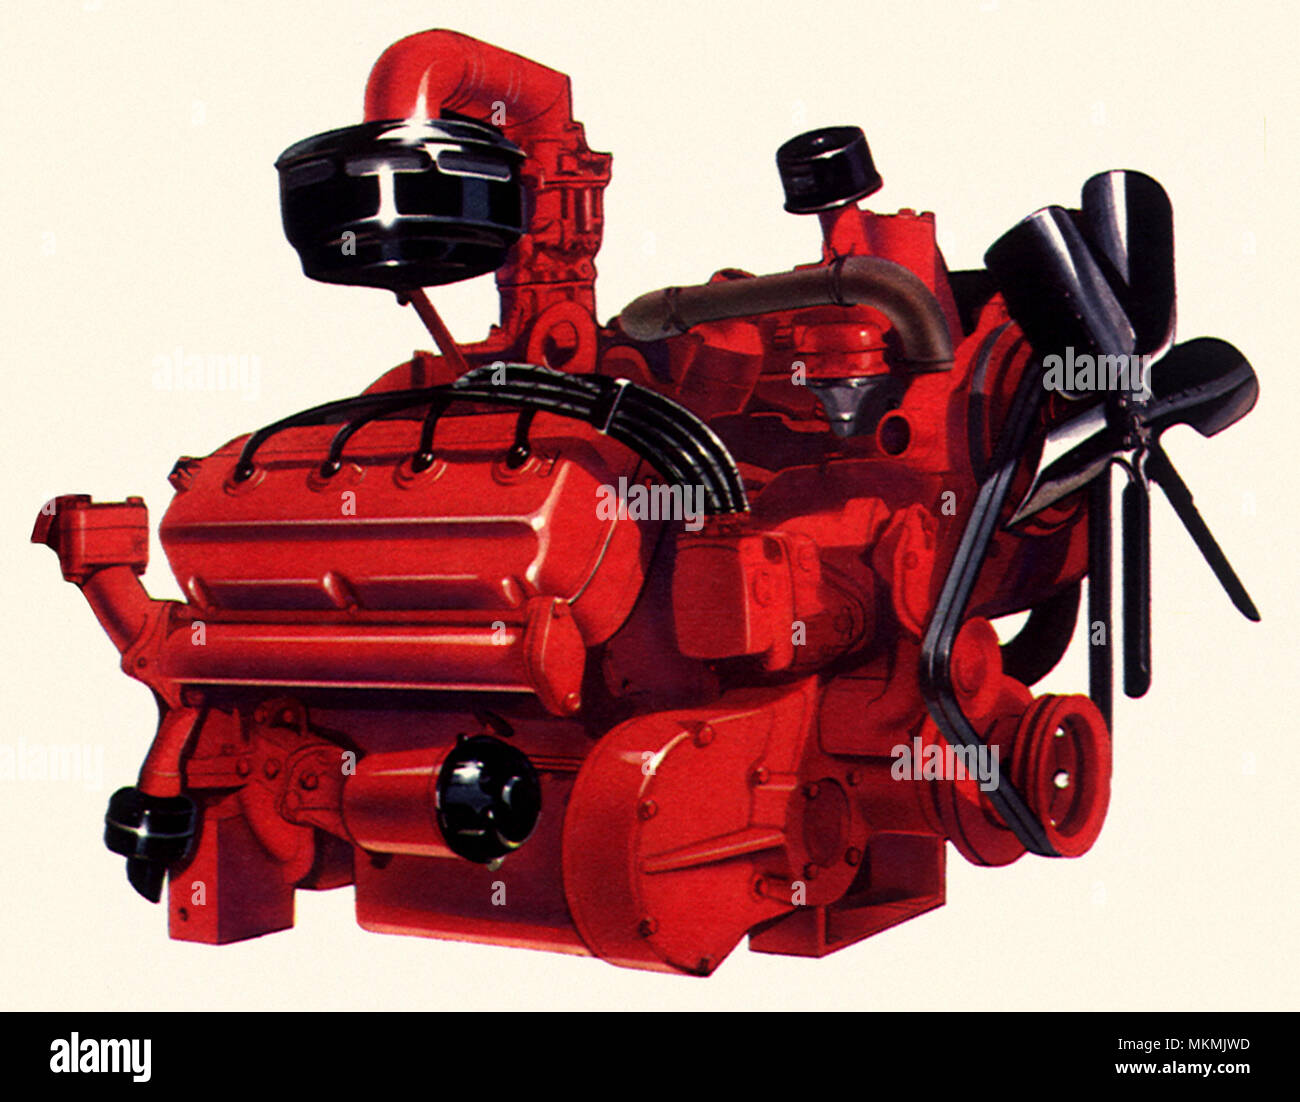 Engine Fitted Stock Photos & Engine Fitted Stock Images - Alamy